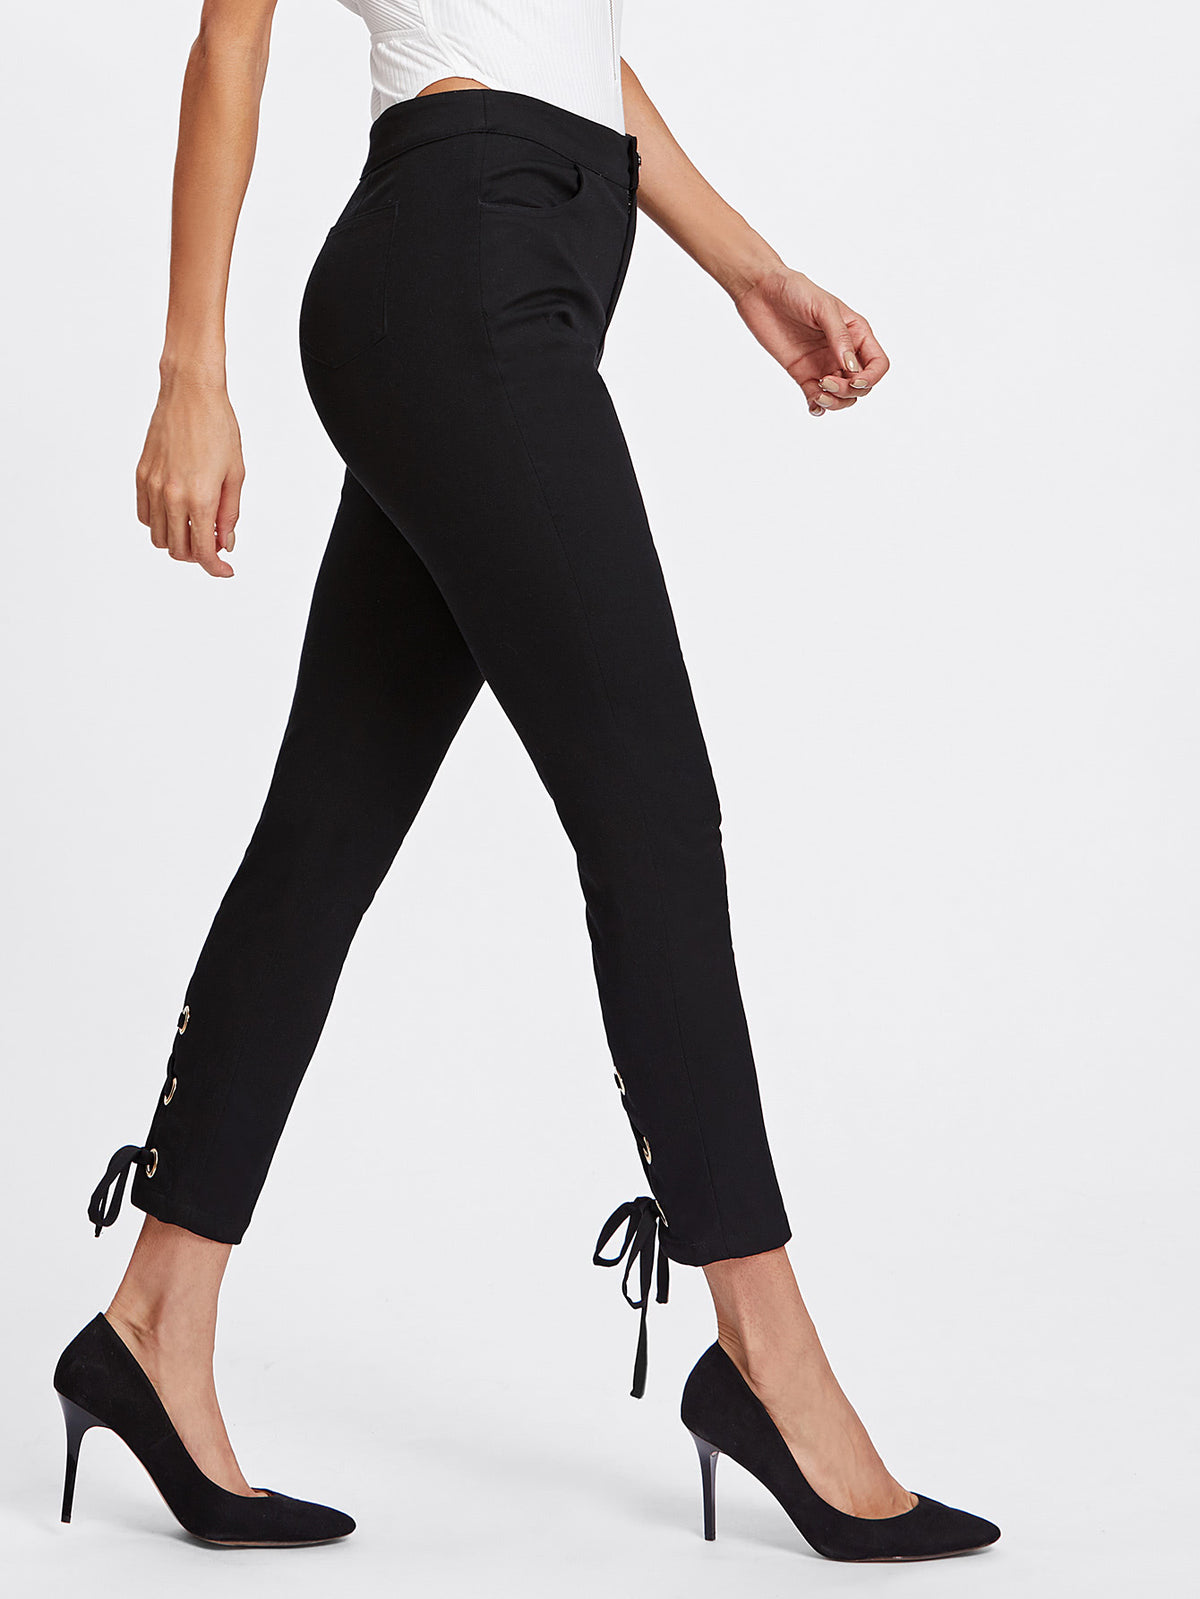 Grommet Lace Up Back Pants